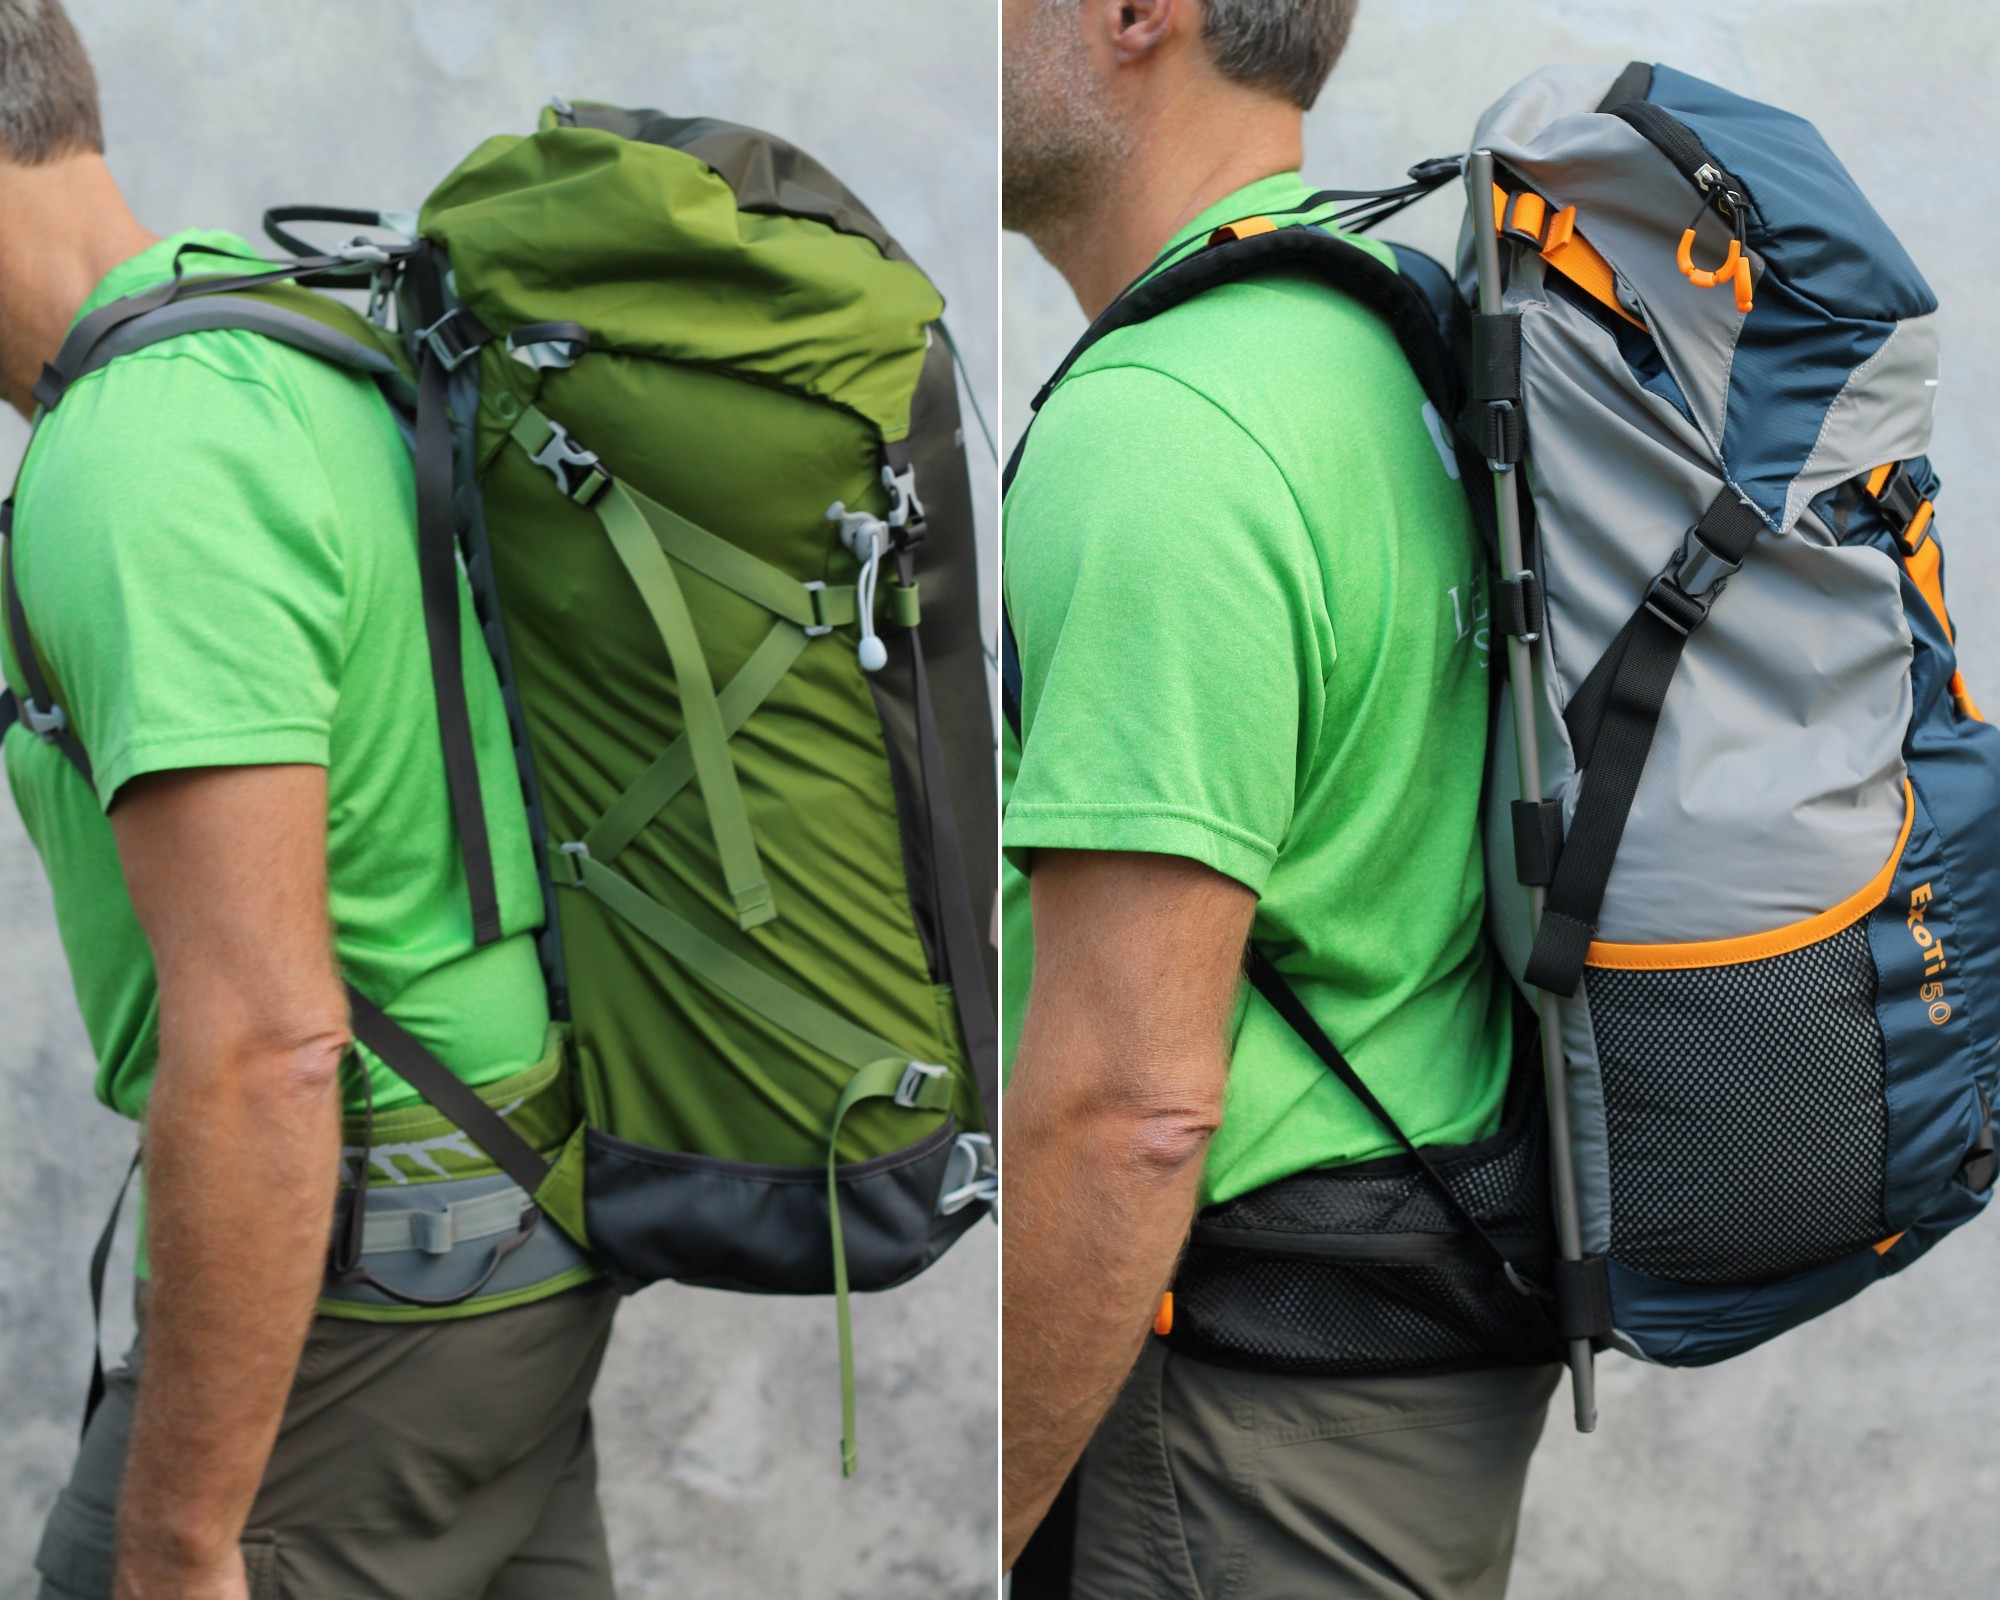 Difference between the ExoTi and a typical backpack